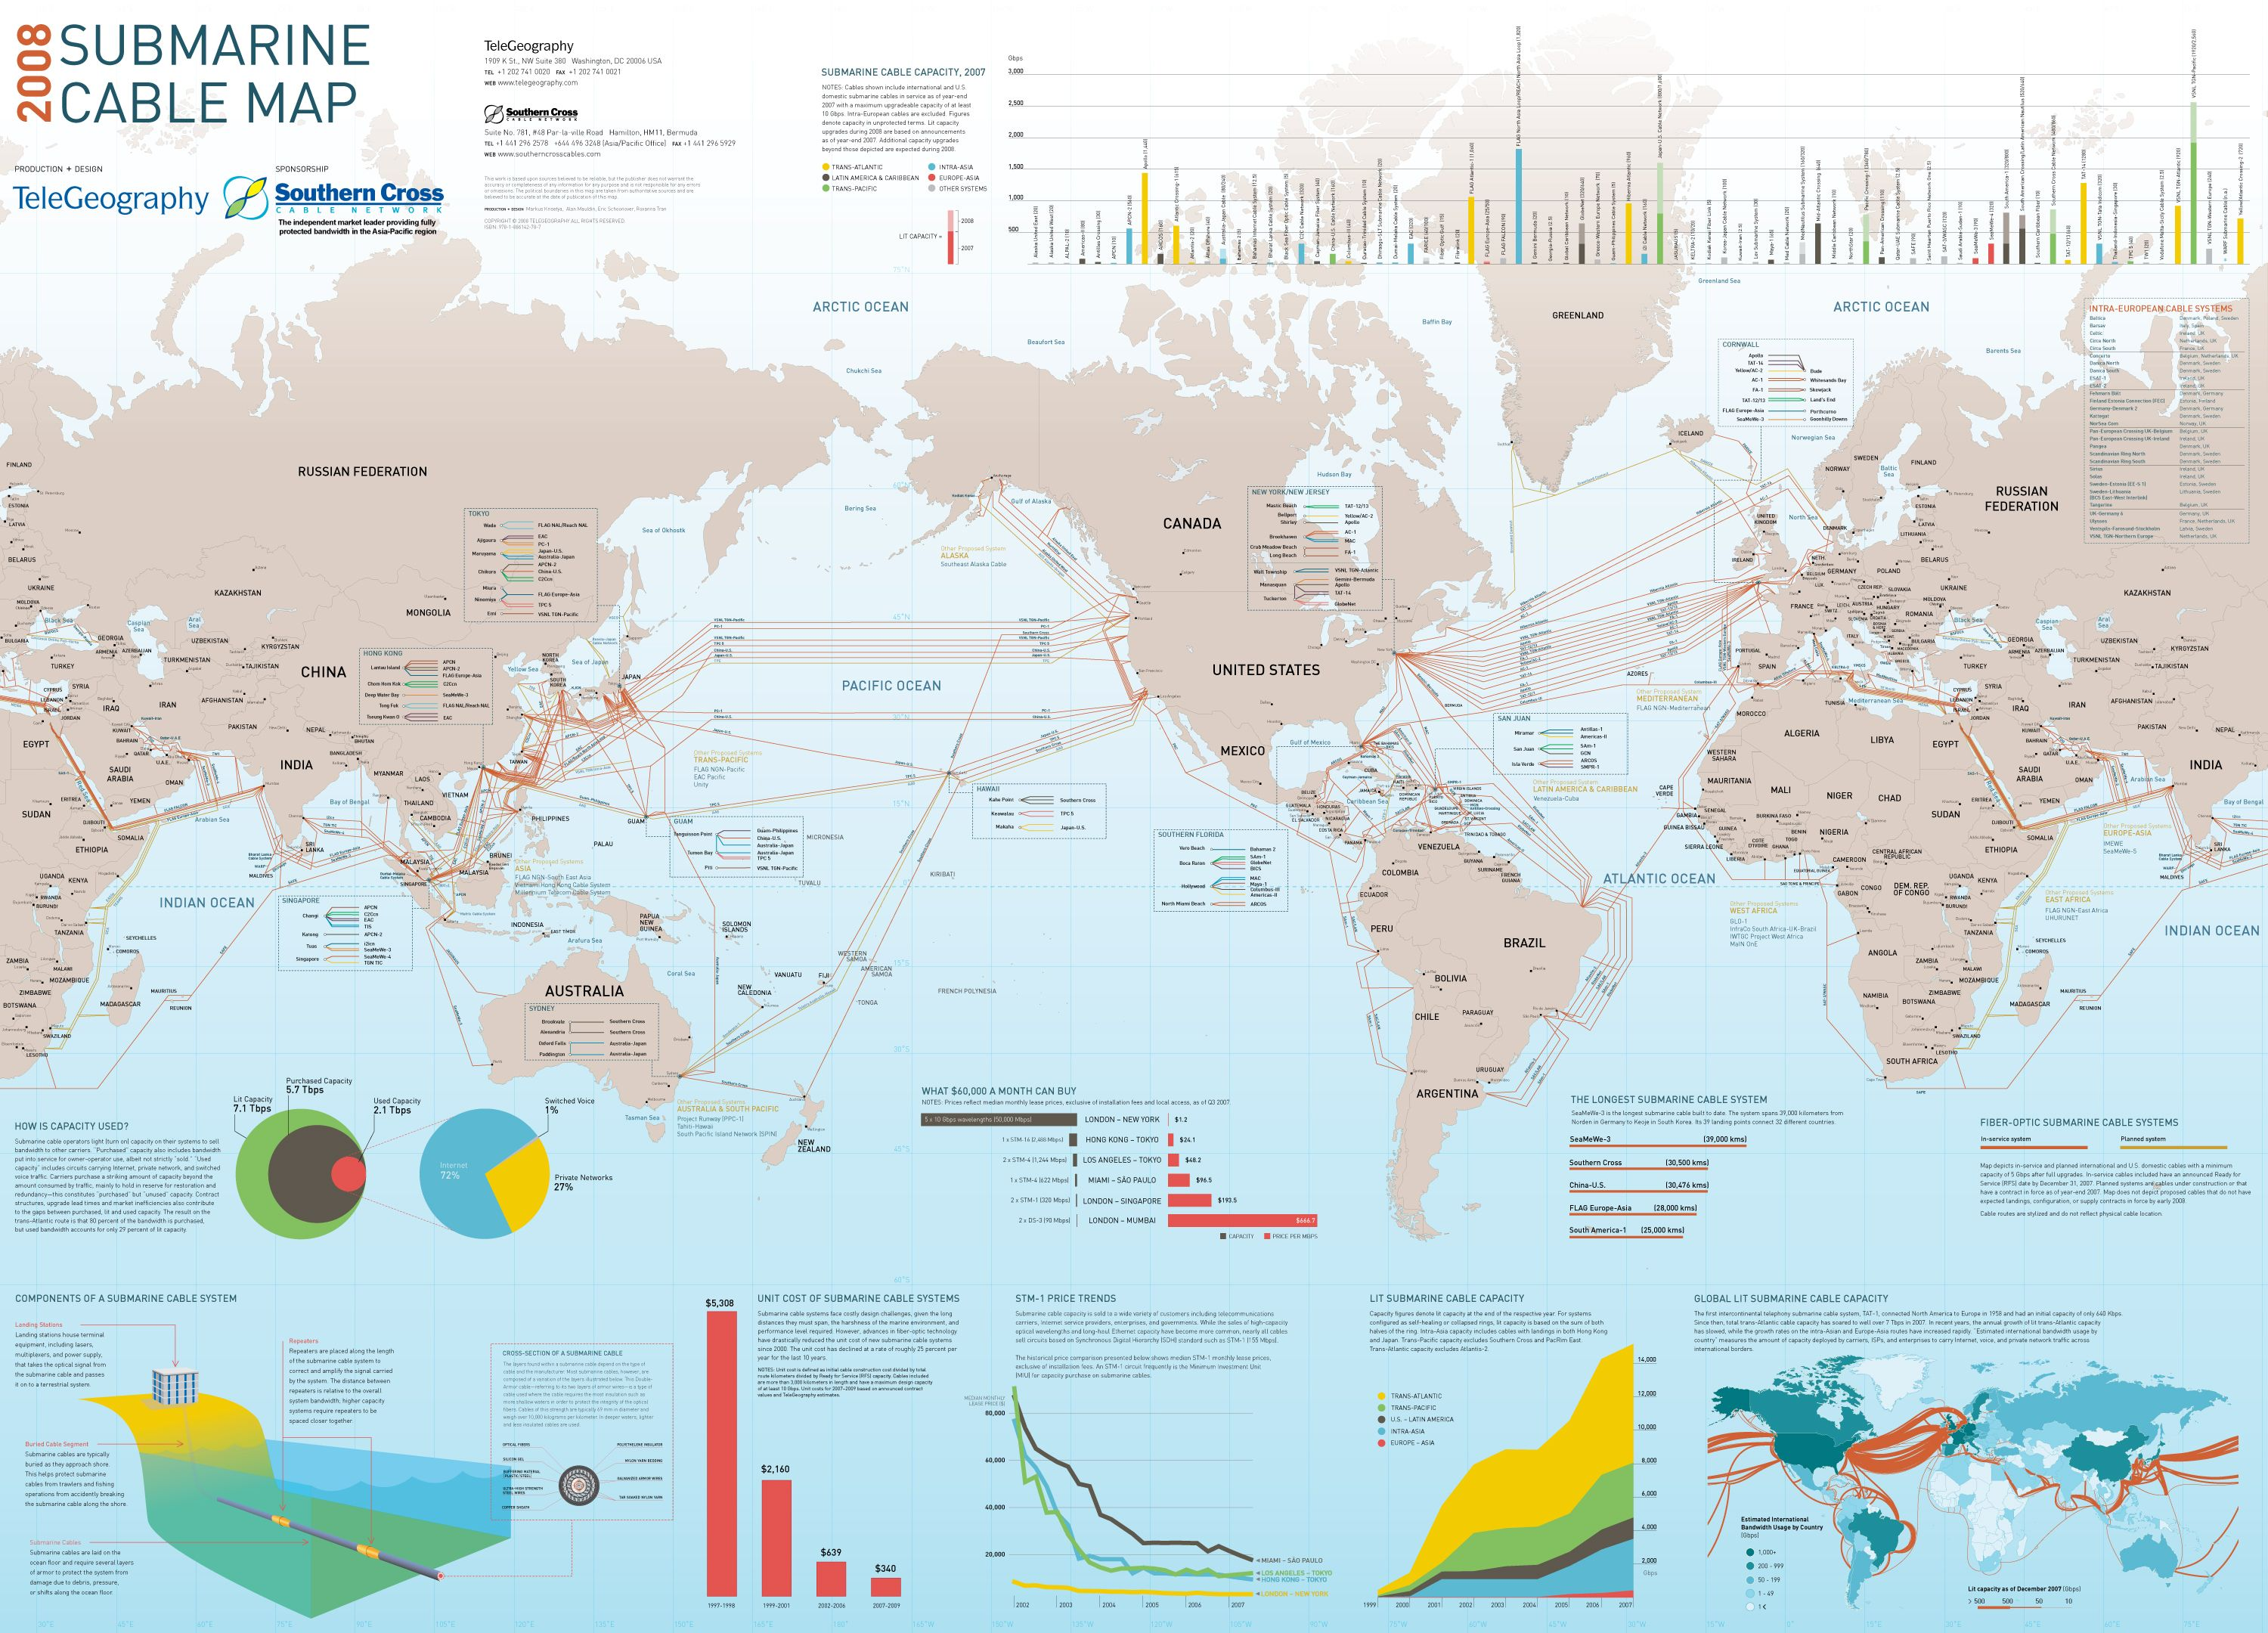 Submarine Cable Map 2008 - Internet Backbone | Hi Tech